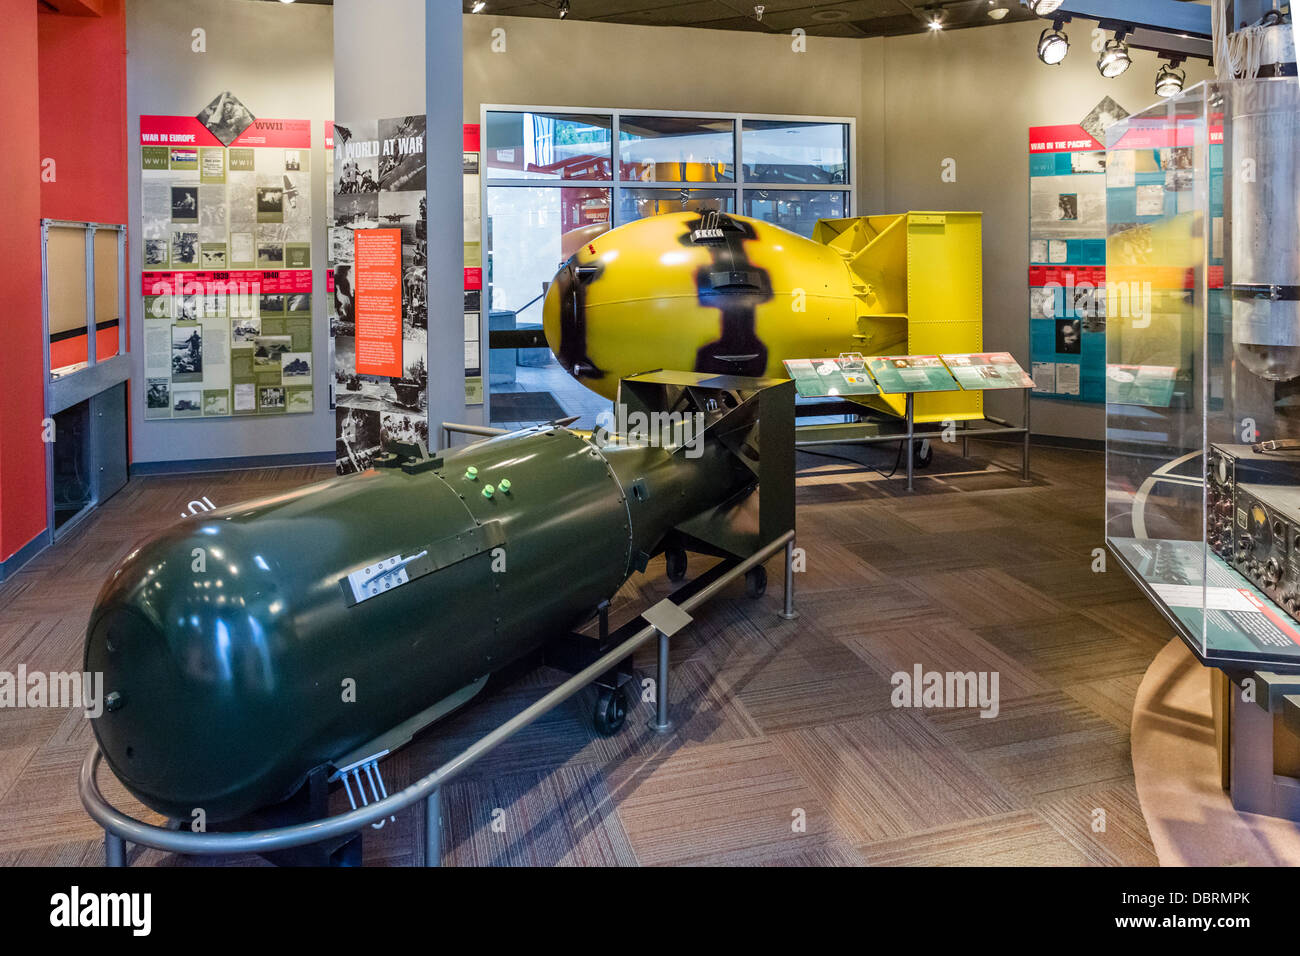 Models of atomic bombs 'Little Boy' (foreground) and 'Fat Man' (yellow), Bradbury Science Museum, - Stock Image